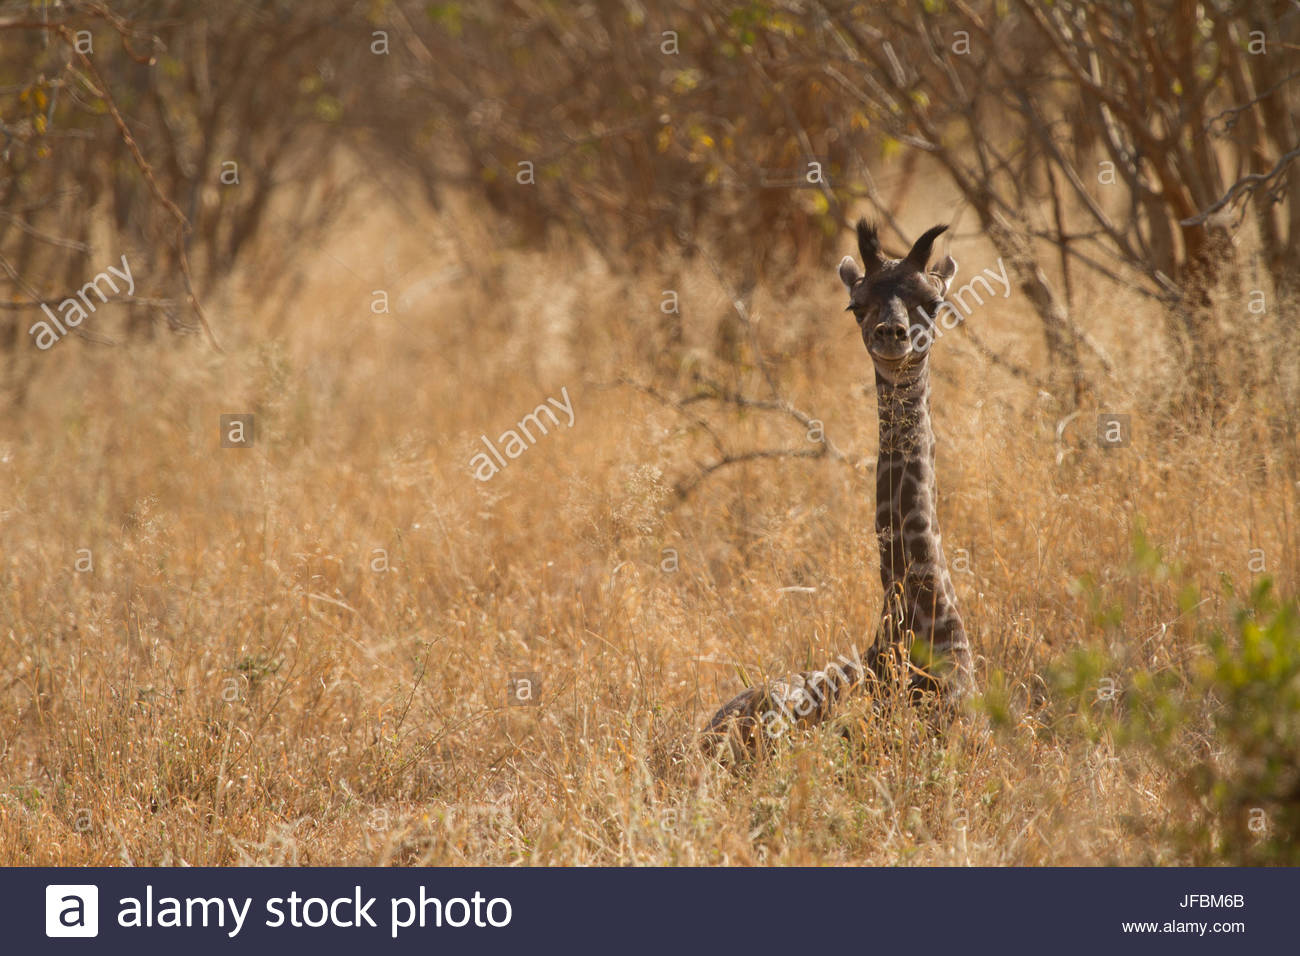 An adolescent giraffe hiding in tall grass. - Stock Image